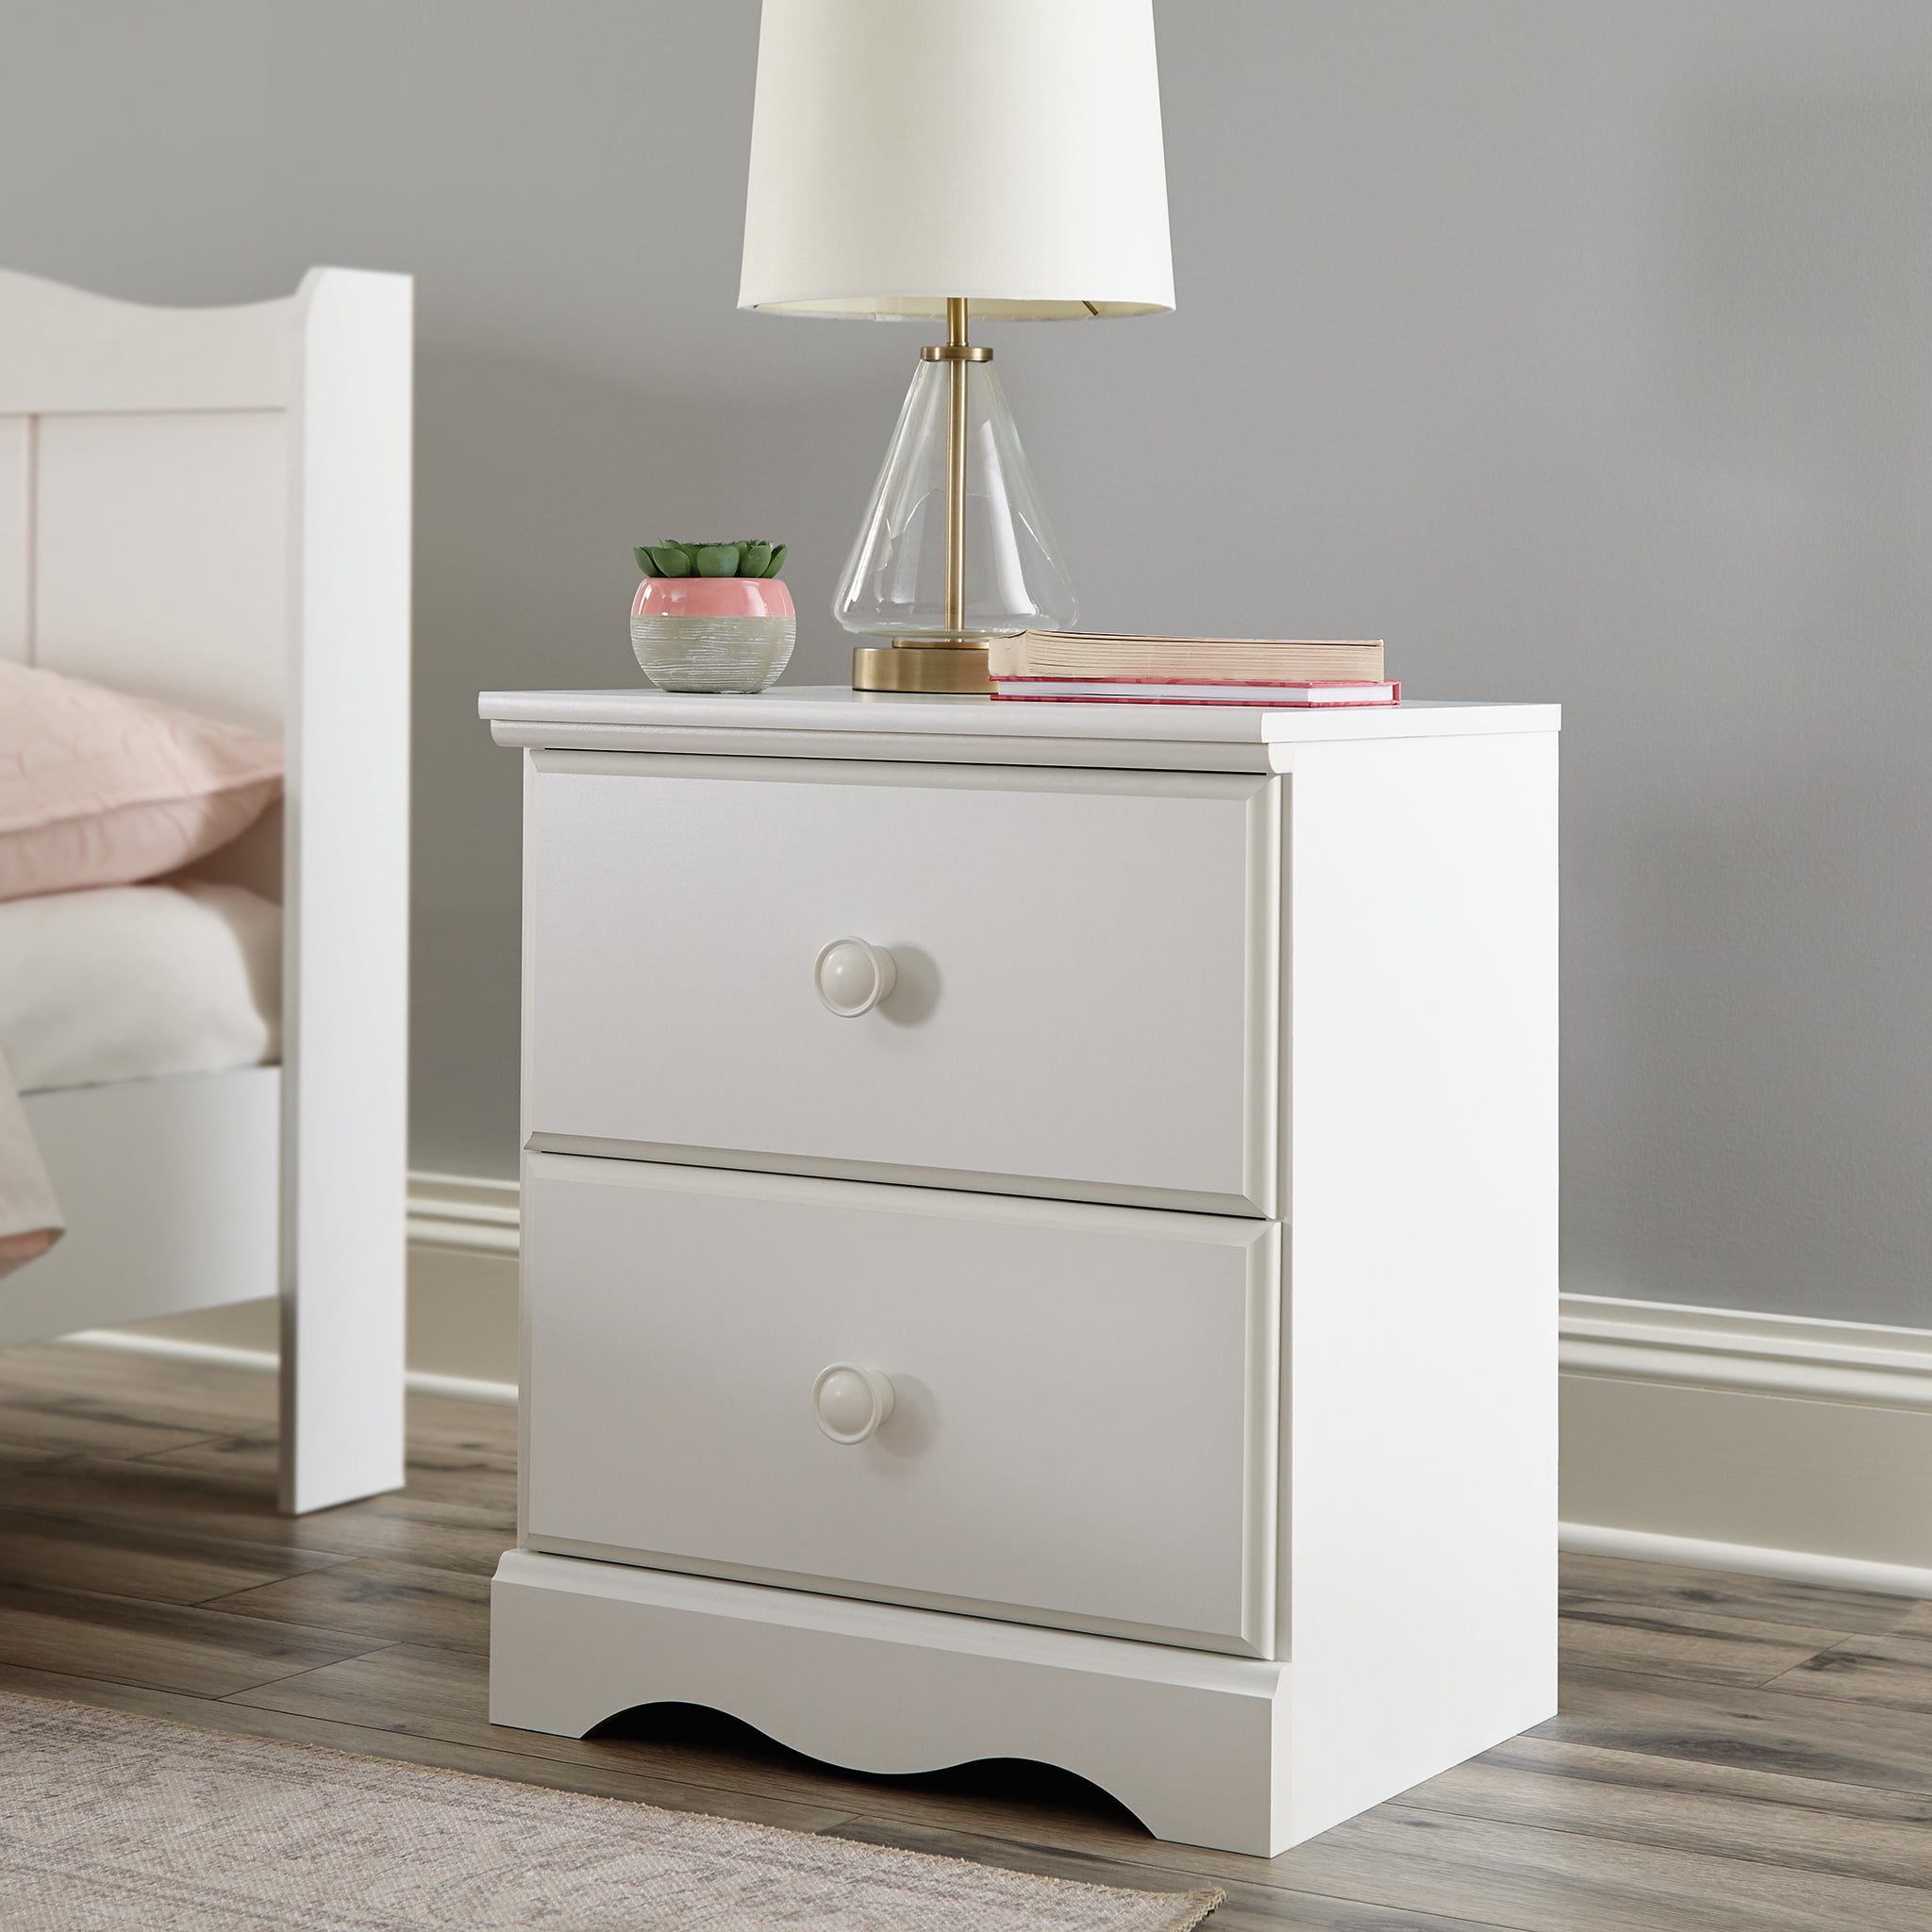 Sauder Storybook 2 Drawer Nightstand Soft White Finish Walmart Com Walmart Com